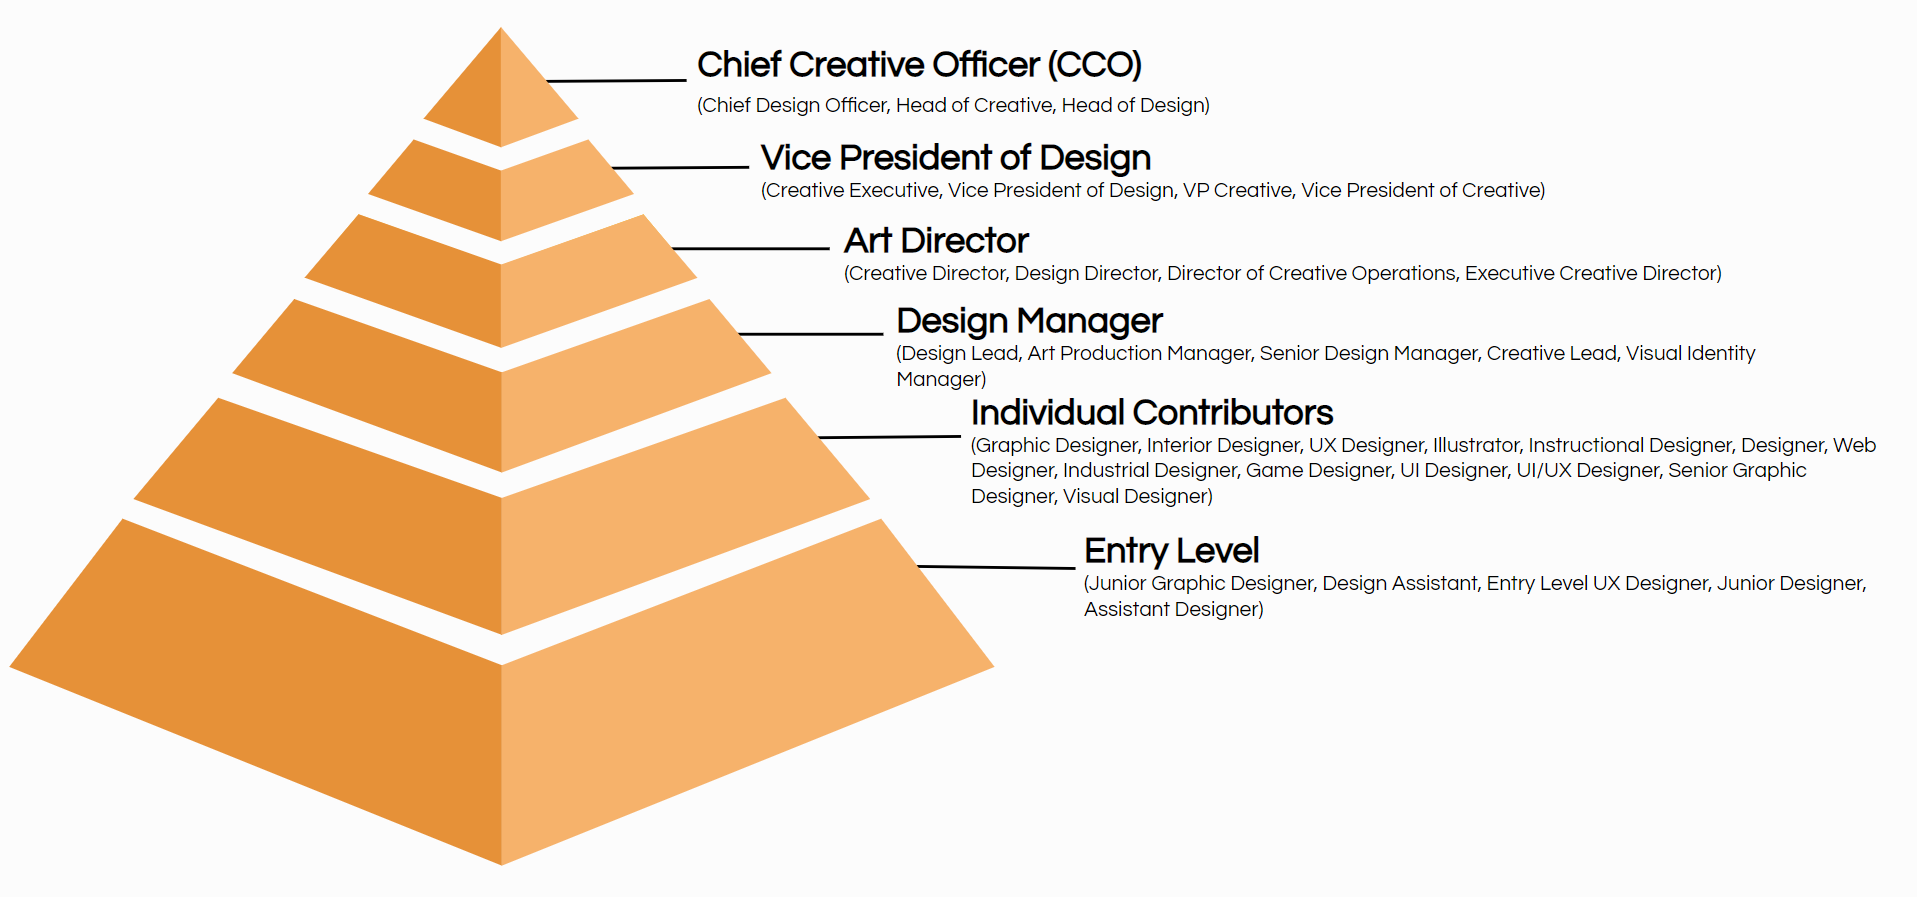 Top 25 Design Job Titles With Descriptions Ongig Blog